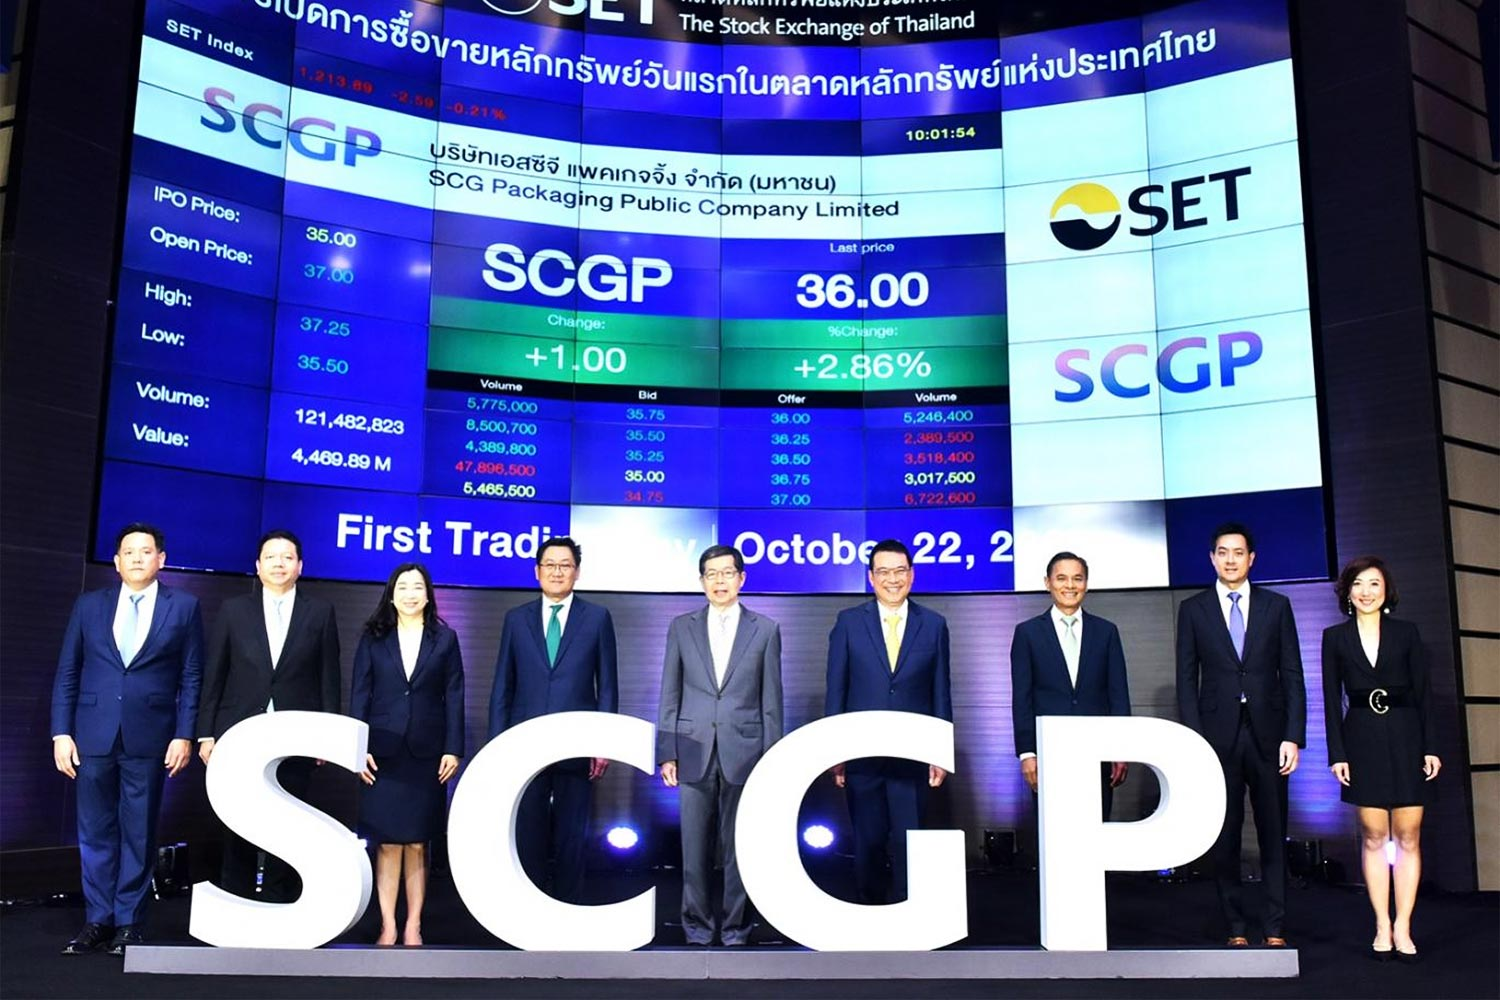 SCGP's debut on SET marks the largest listing this year